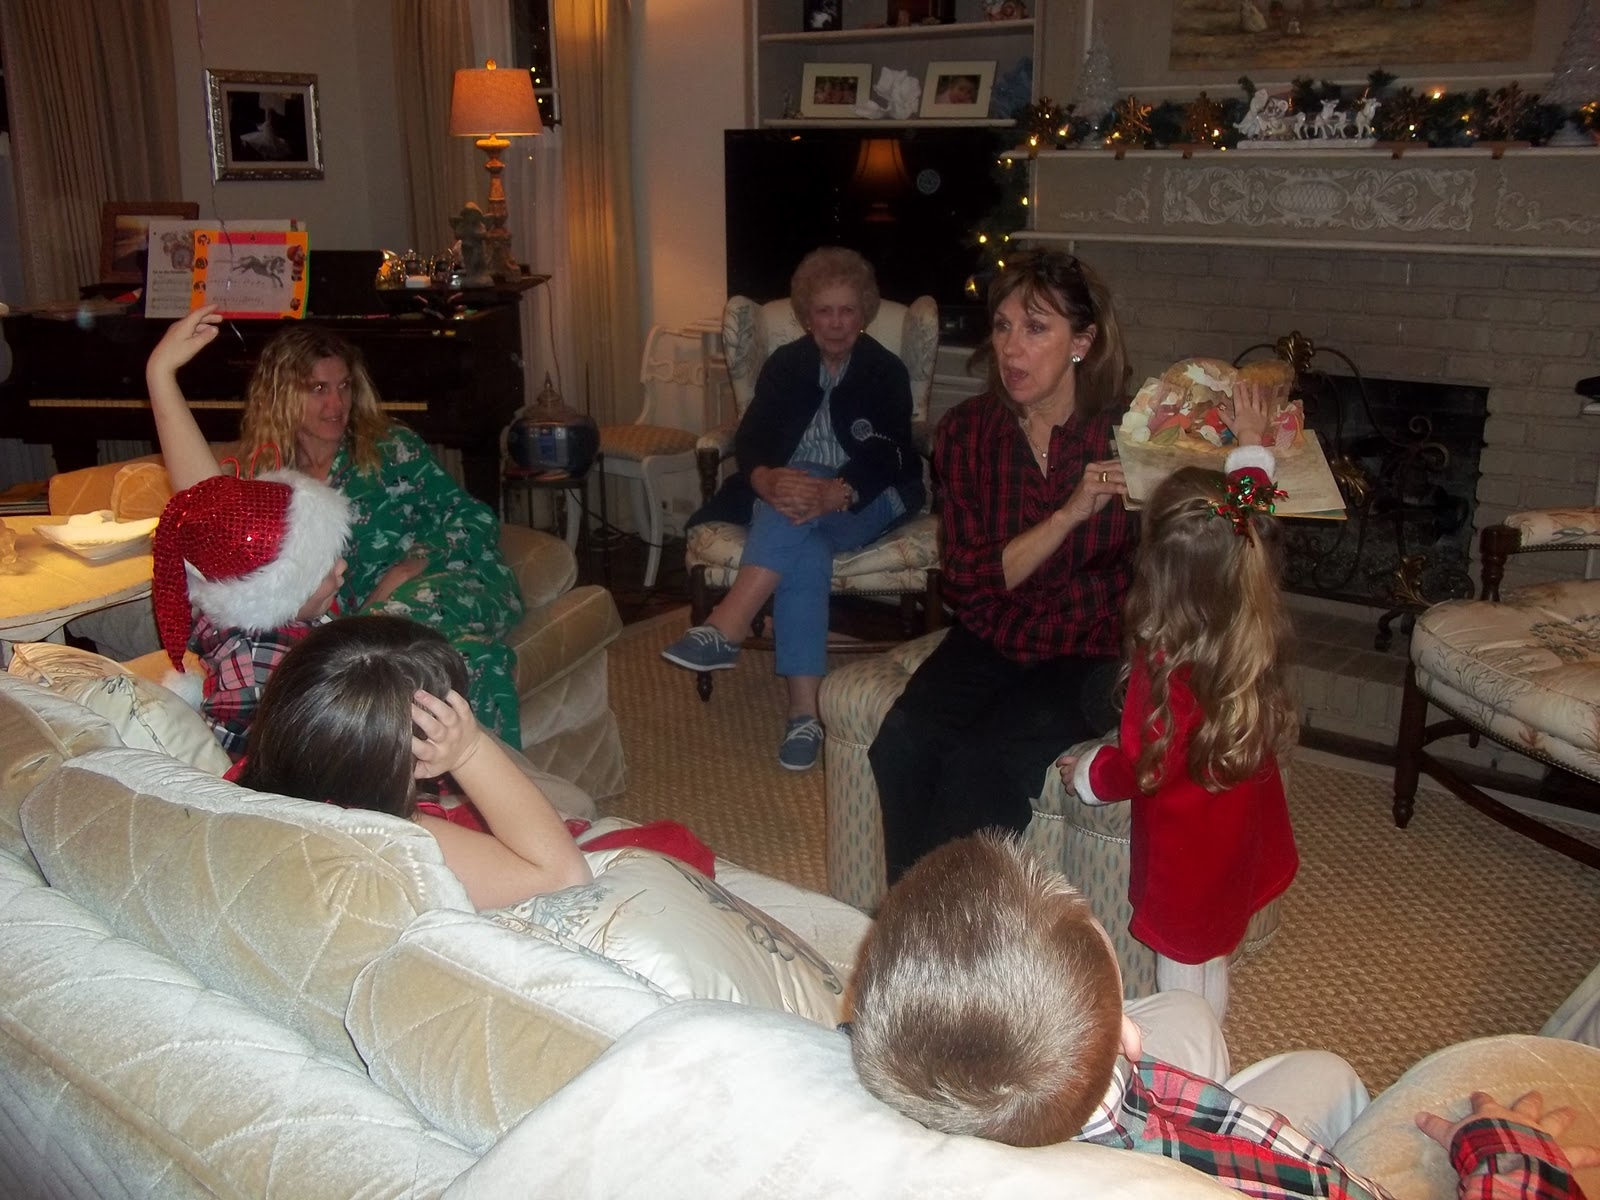 The Posh Pixie Christmas Eve With Children